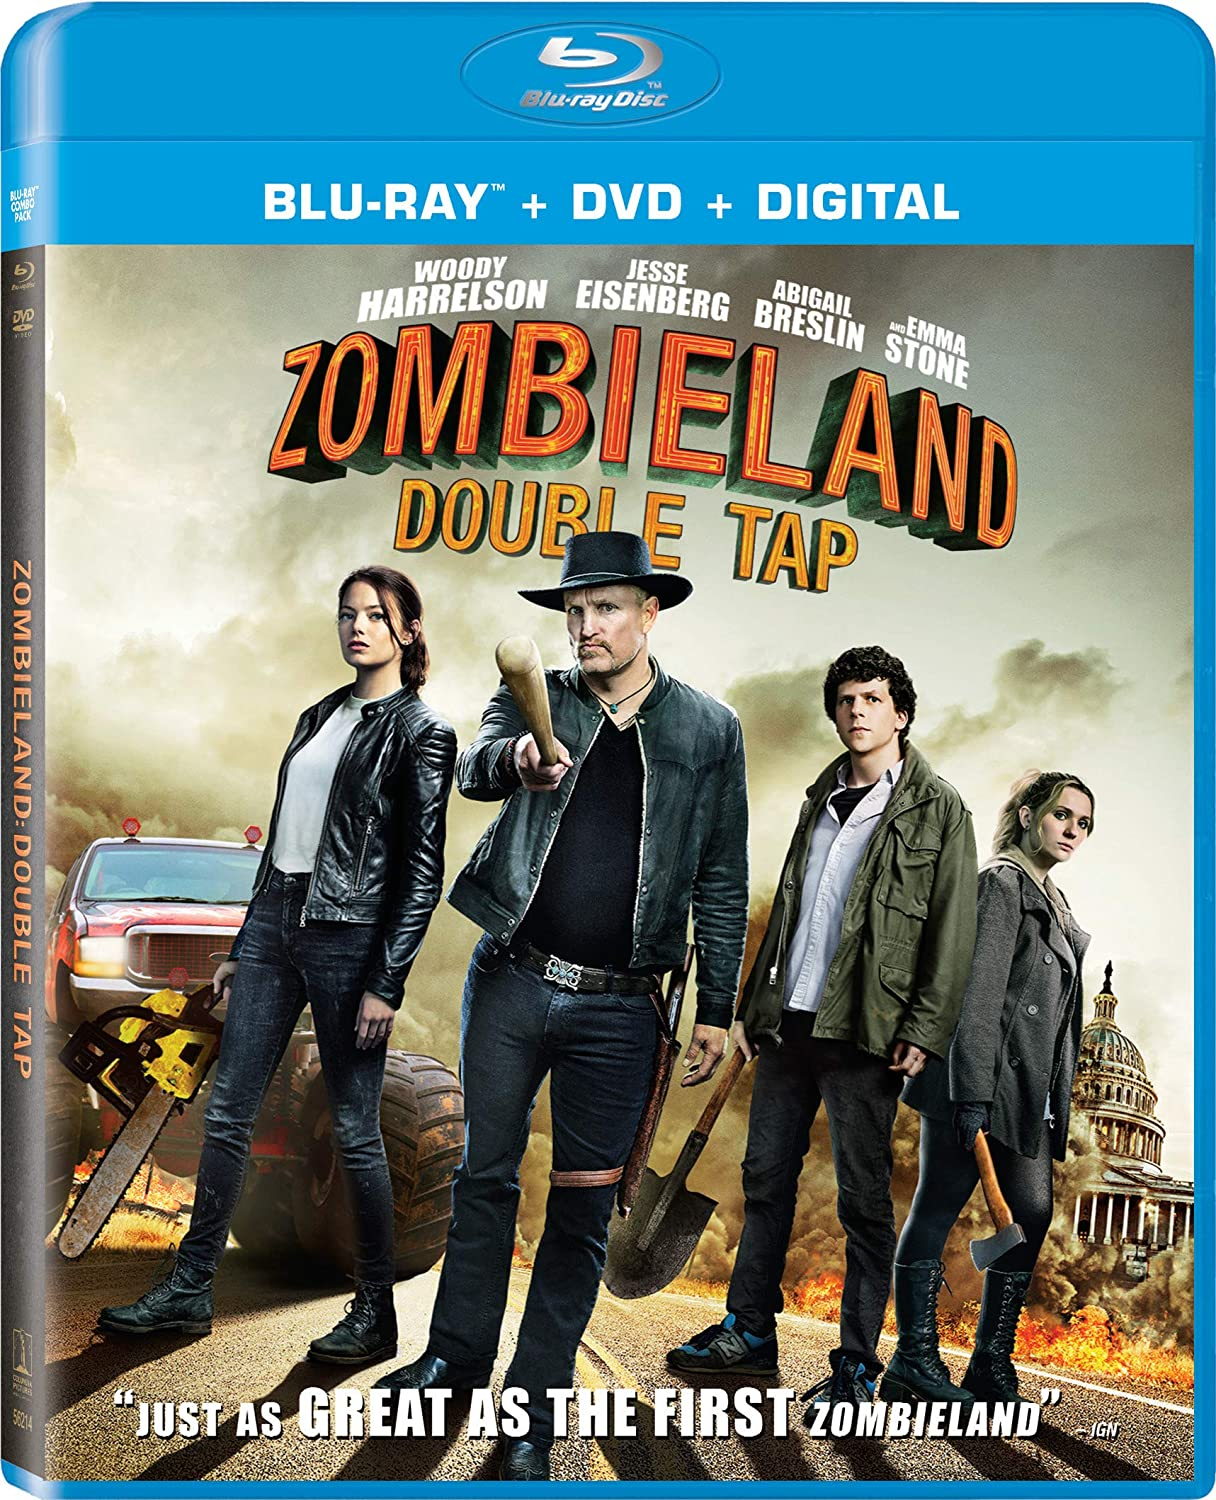 blu ray releases october 2020